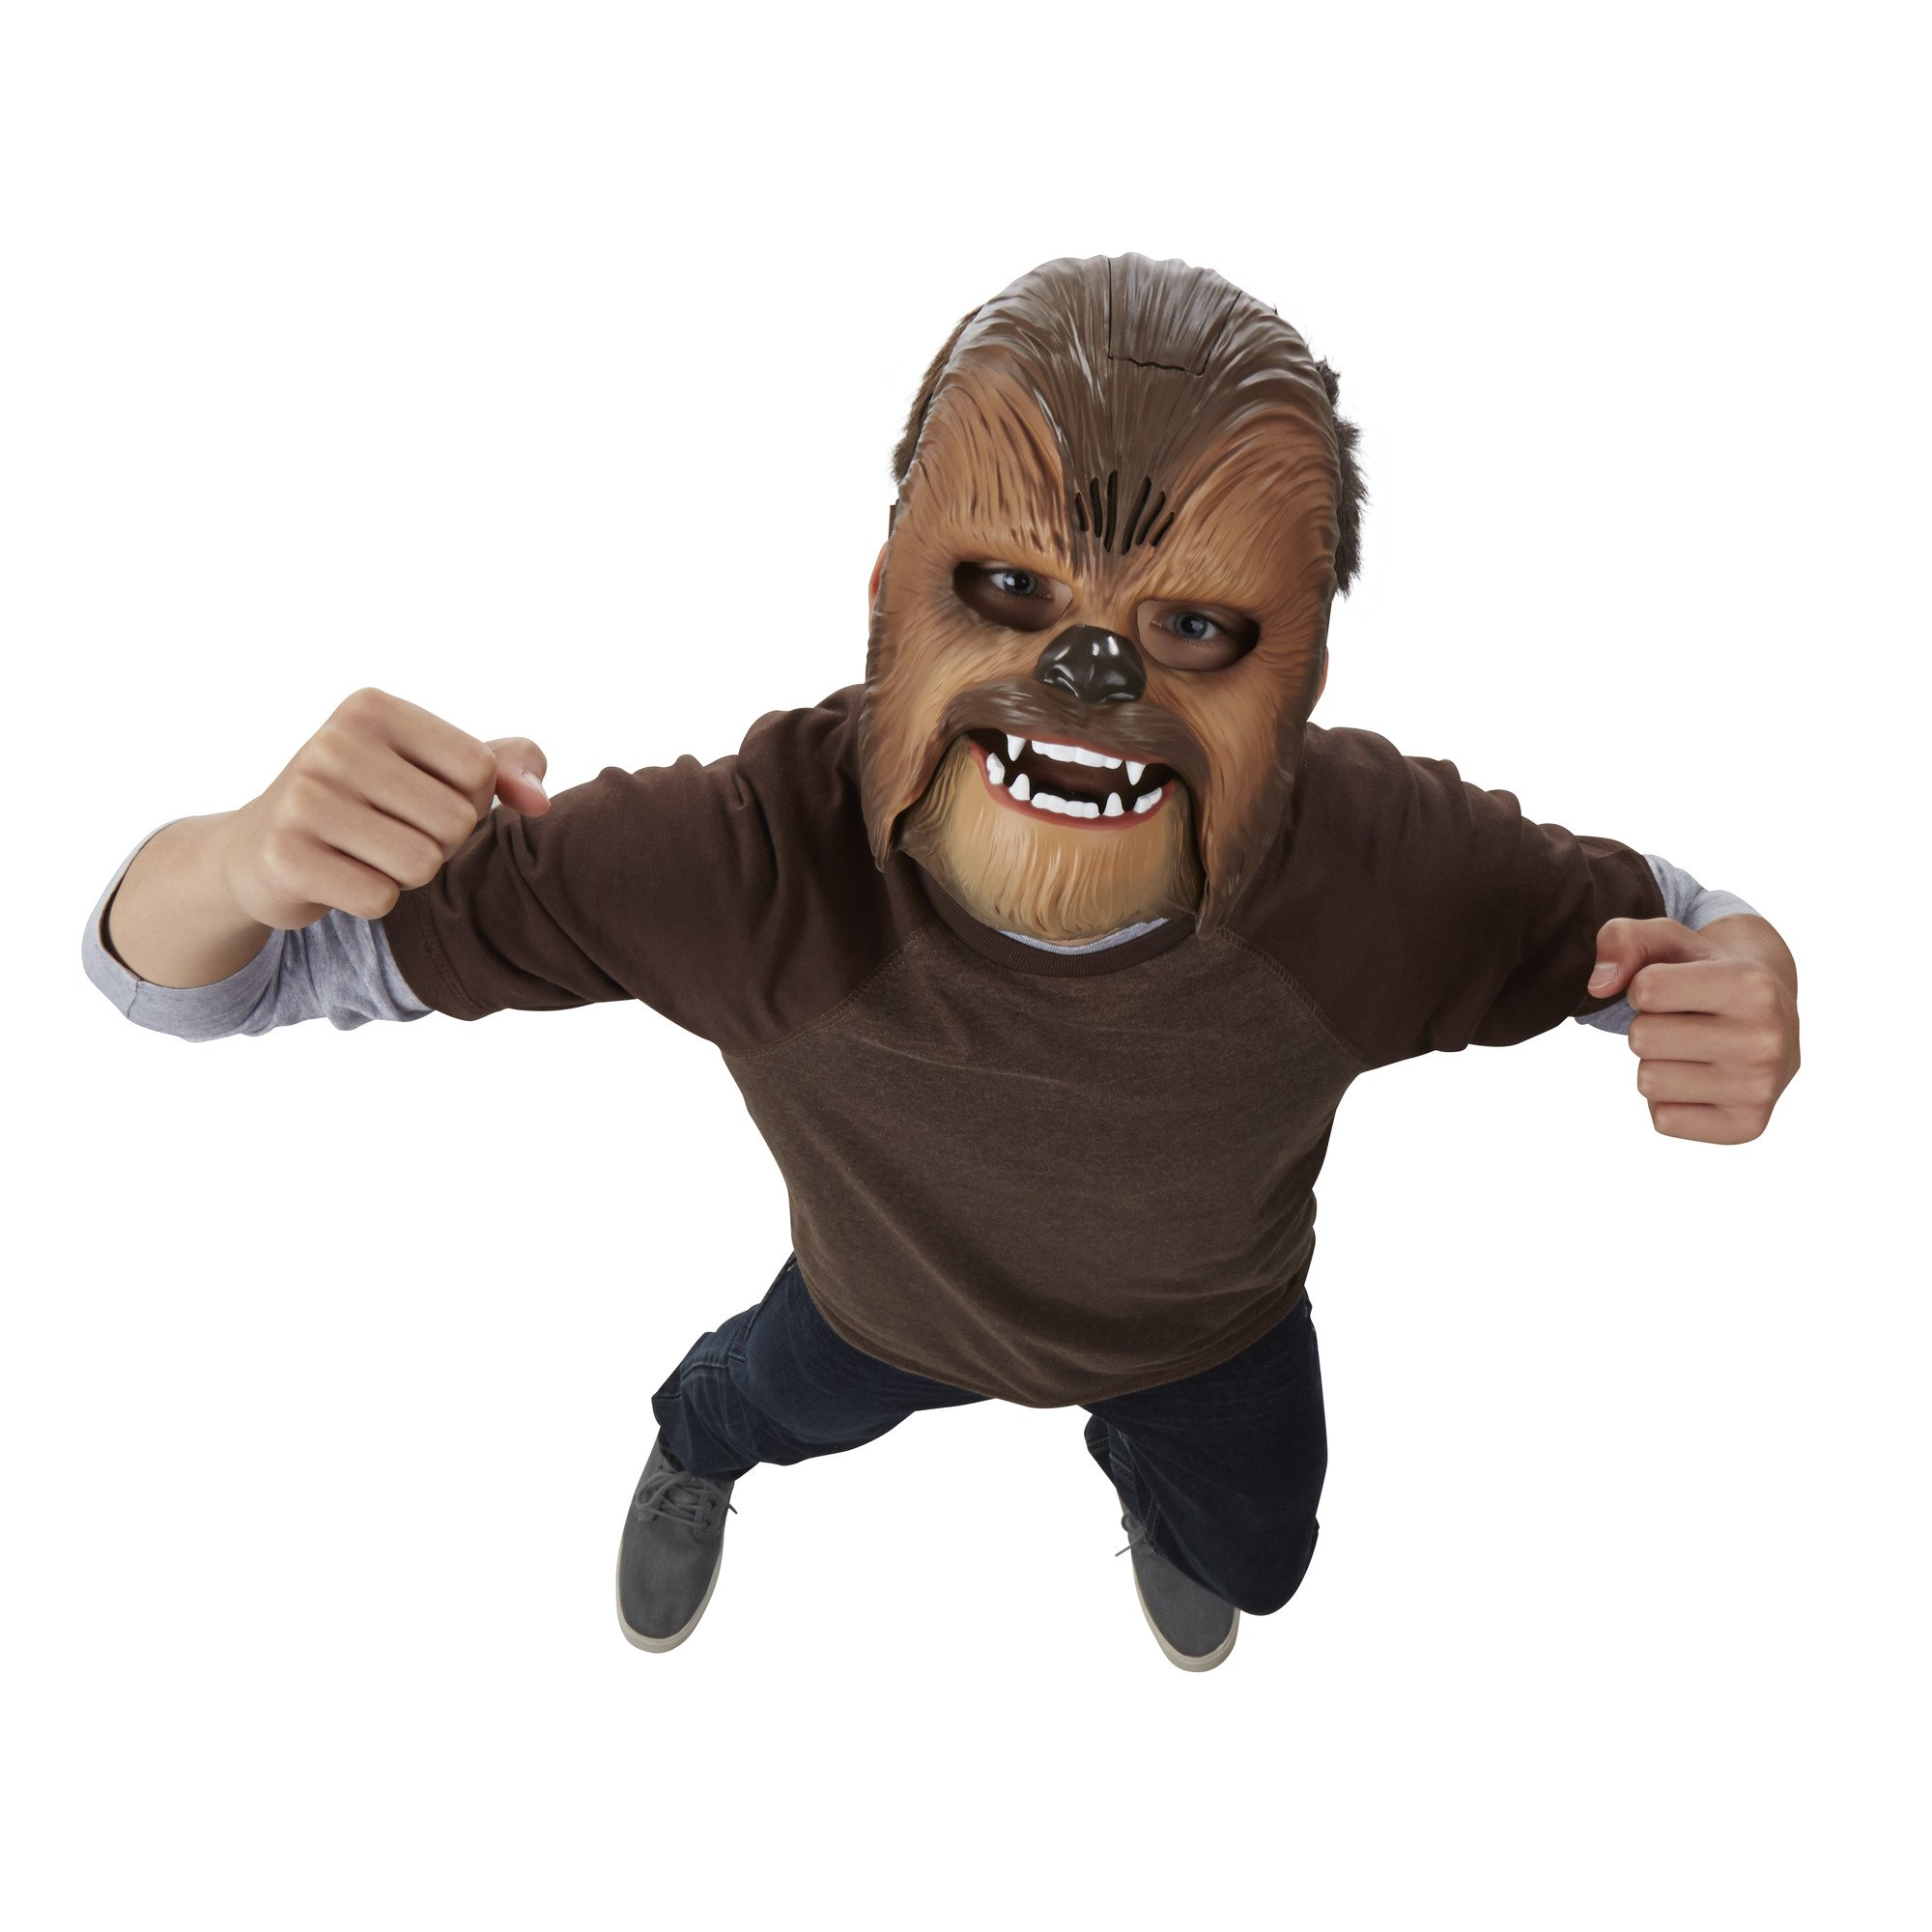 Star Wars Movie Roaring Chewbacca Wookiee Sounds Mask, Ages 5 and up (Amazon Exclusive) by Star Wars (Image #7)